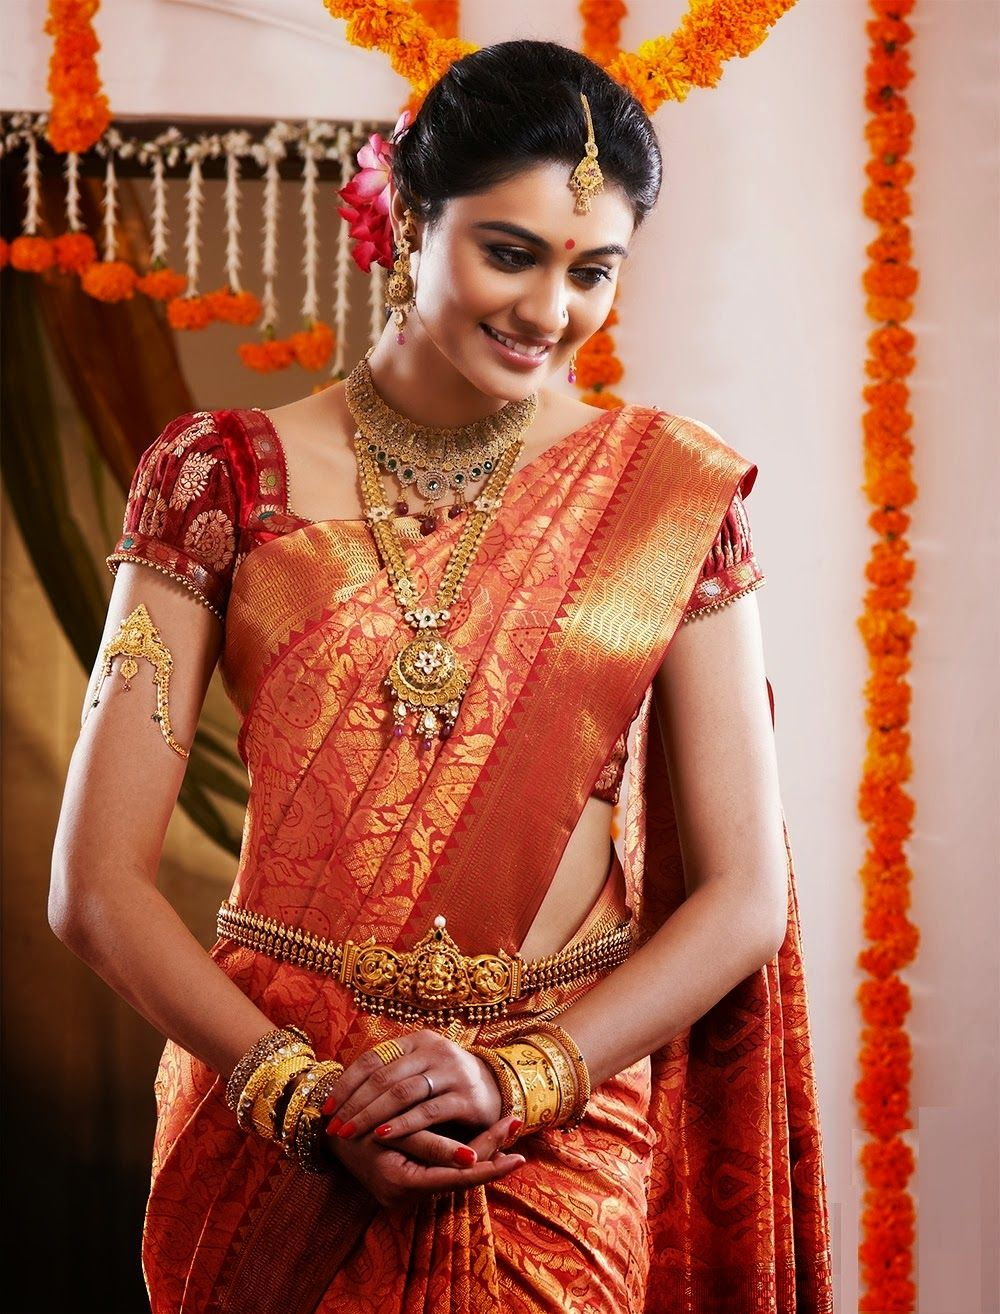 South Indian Bride in Red and Orange Saree | Butterflies of India ...